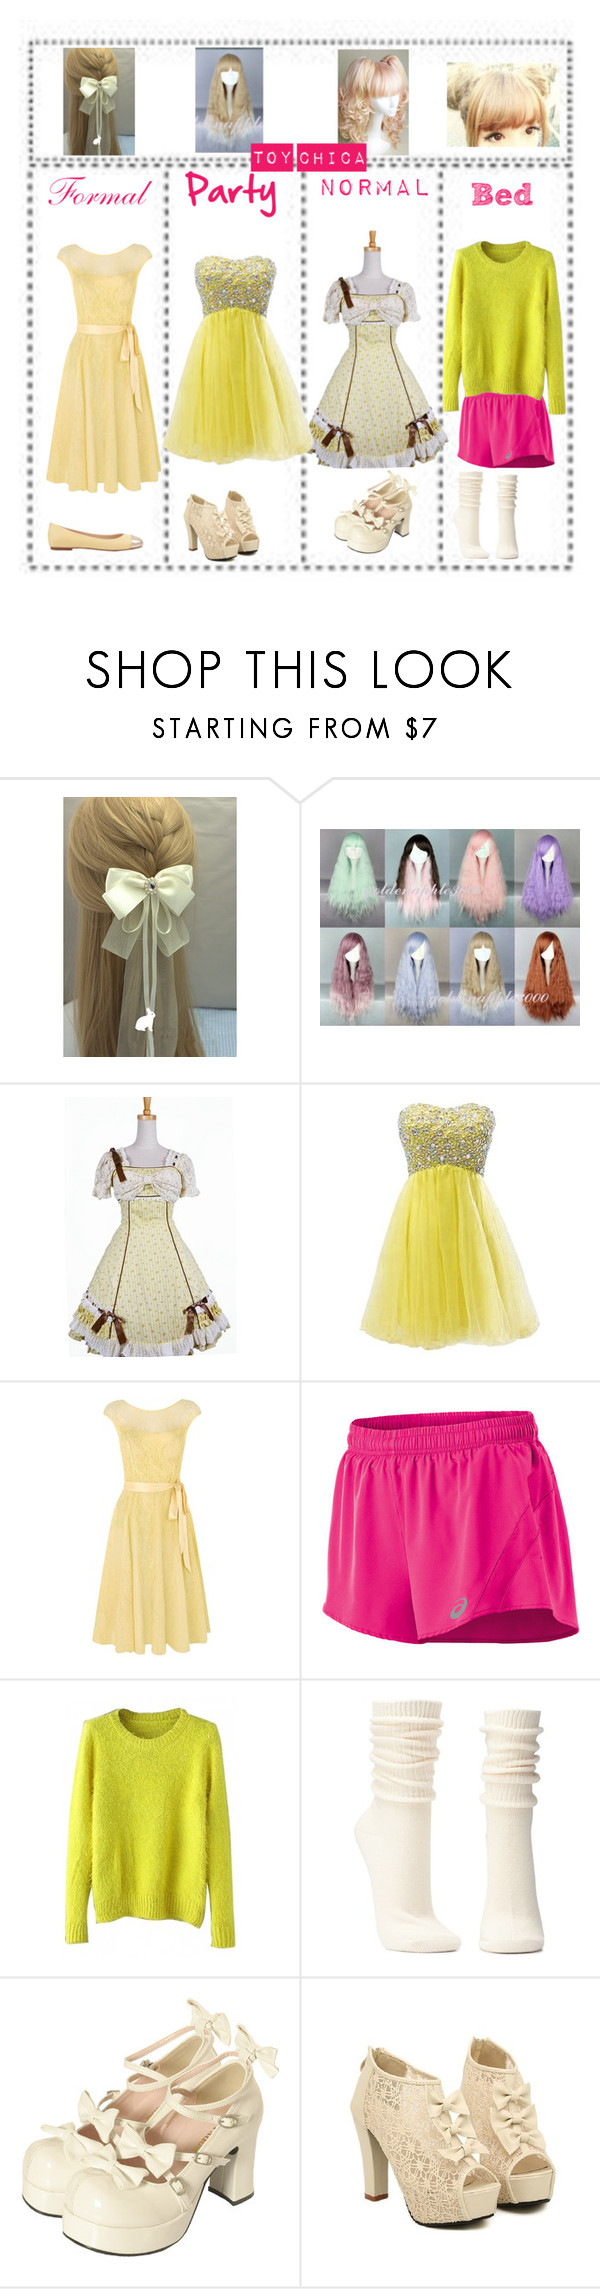 """""""Toy Chica"""" by meep1213 ❤ liked on Polyvore featuring Kaliko, Asics, Charlotte Russe, Bodyline and ANNA BAIGUERA"""